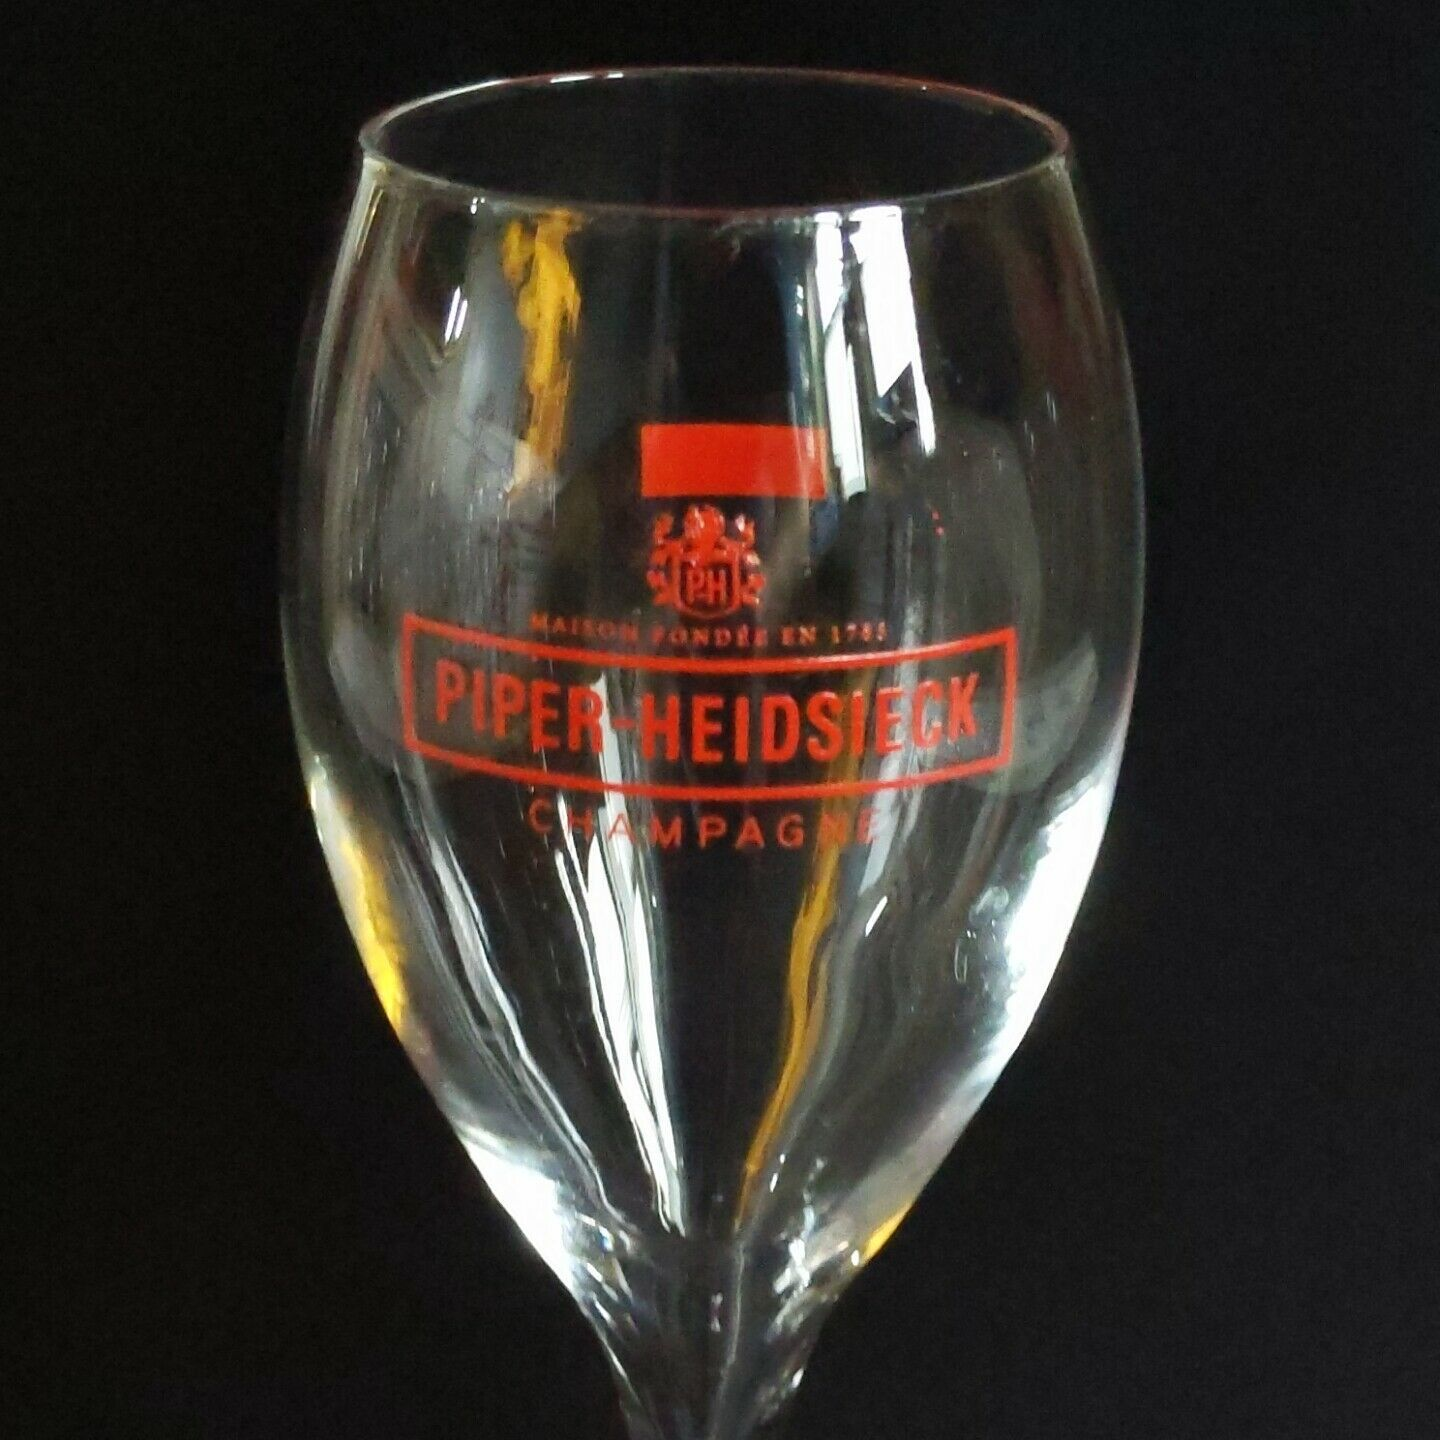 6 (Six) PIPER-HEIDSIECK RED LOGO Maison Fonde'e  1785 Crystal Champagne Flutes image 4